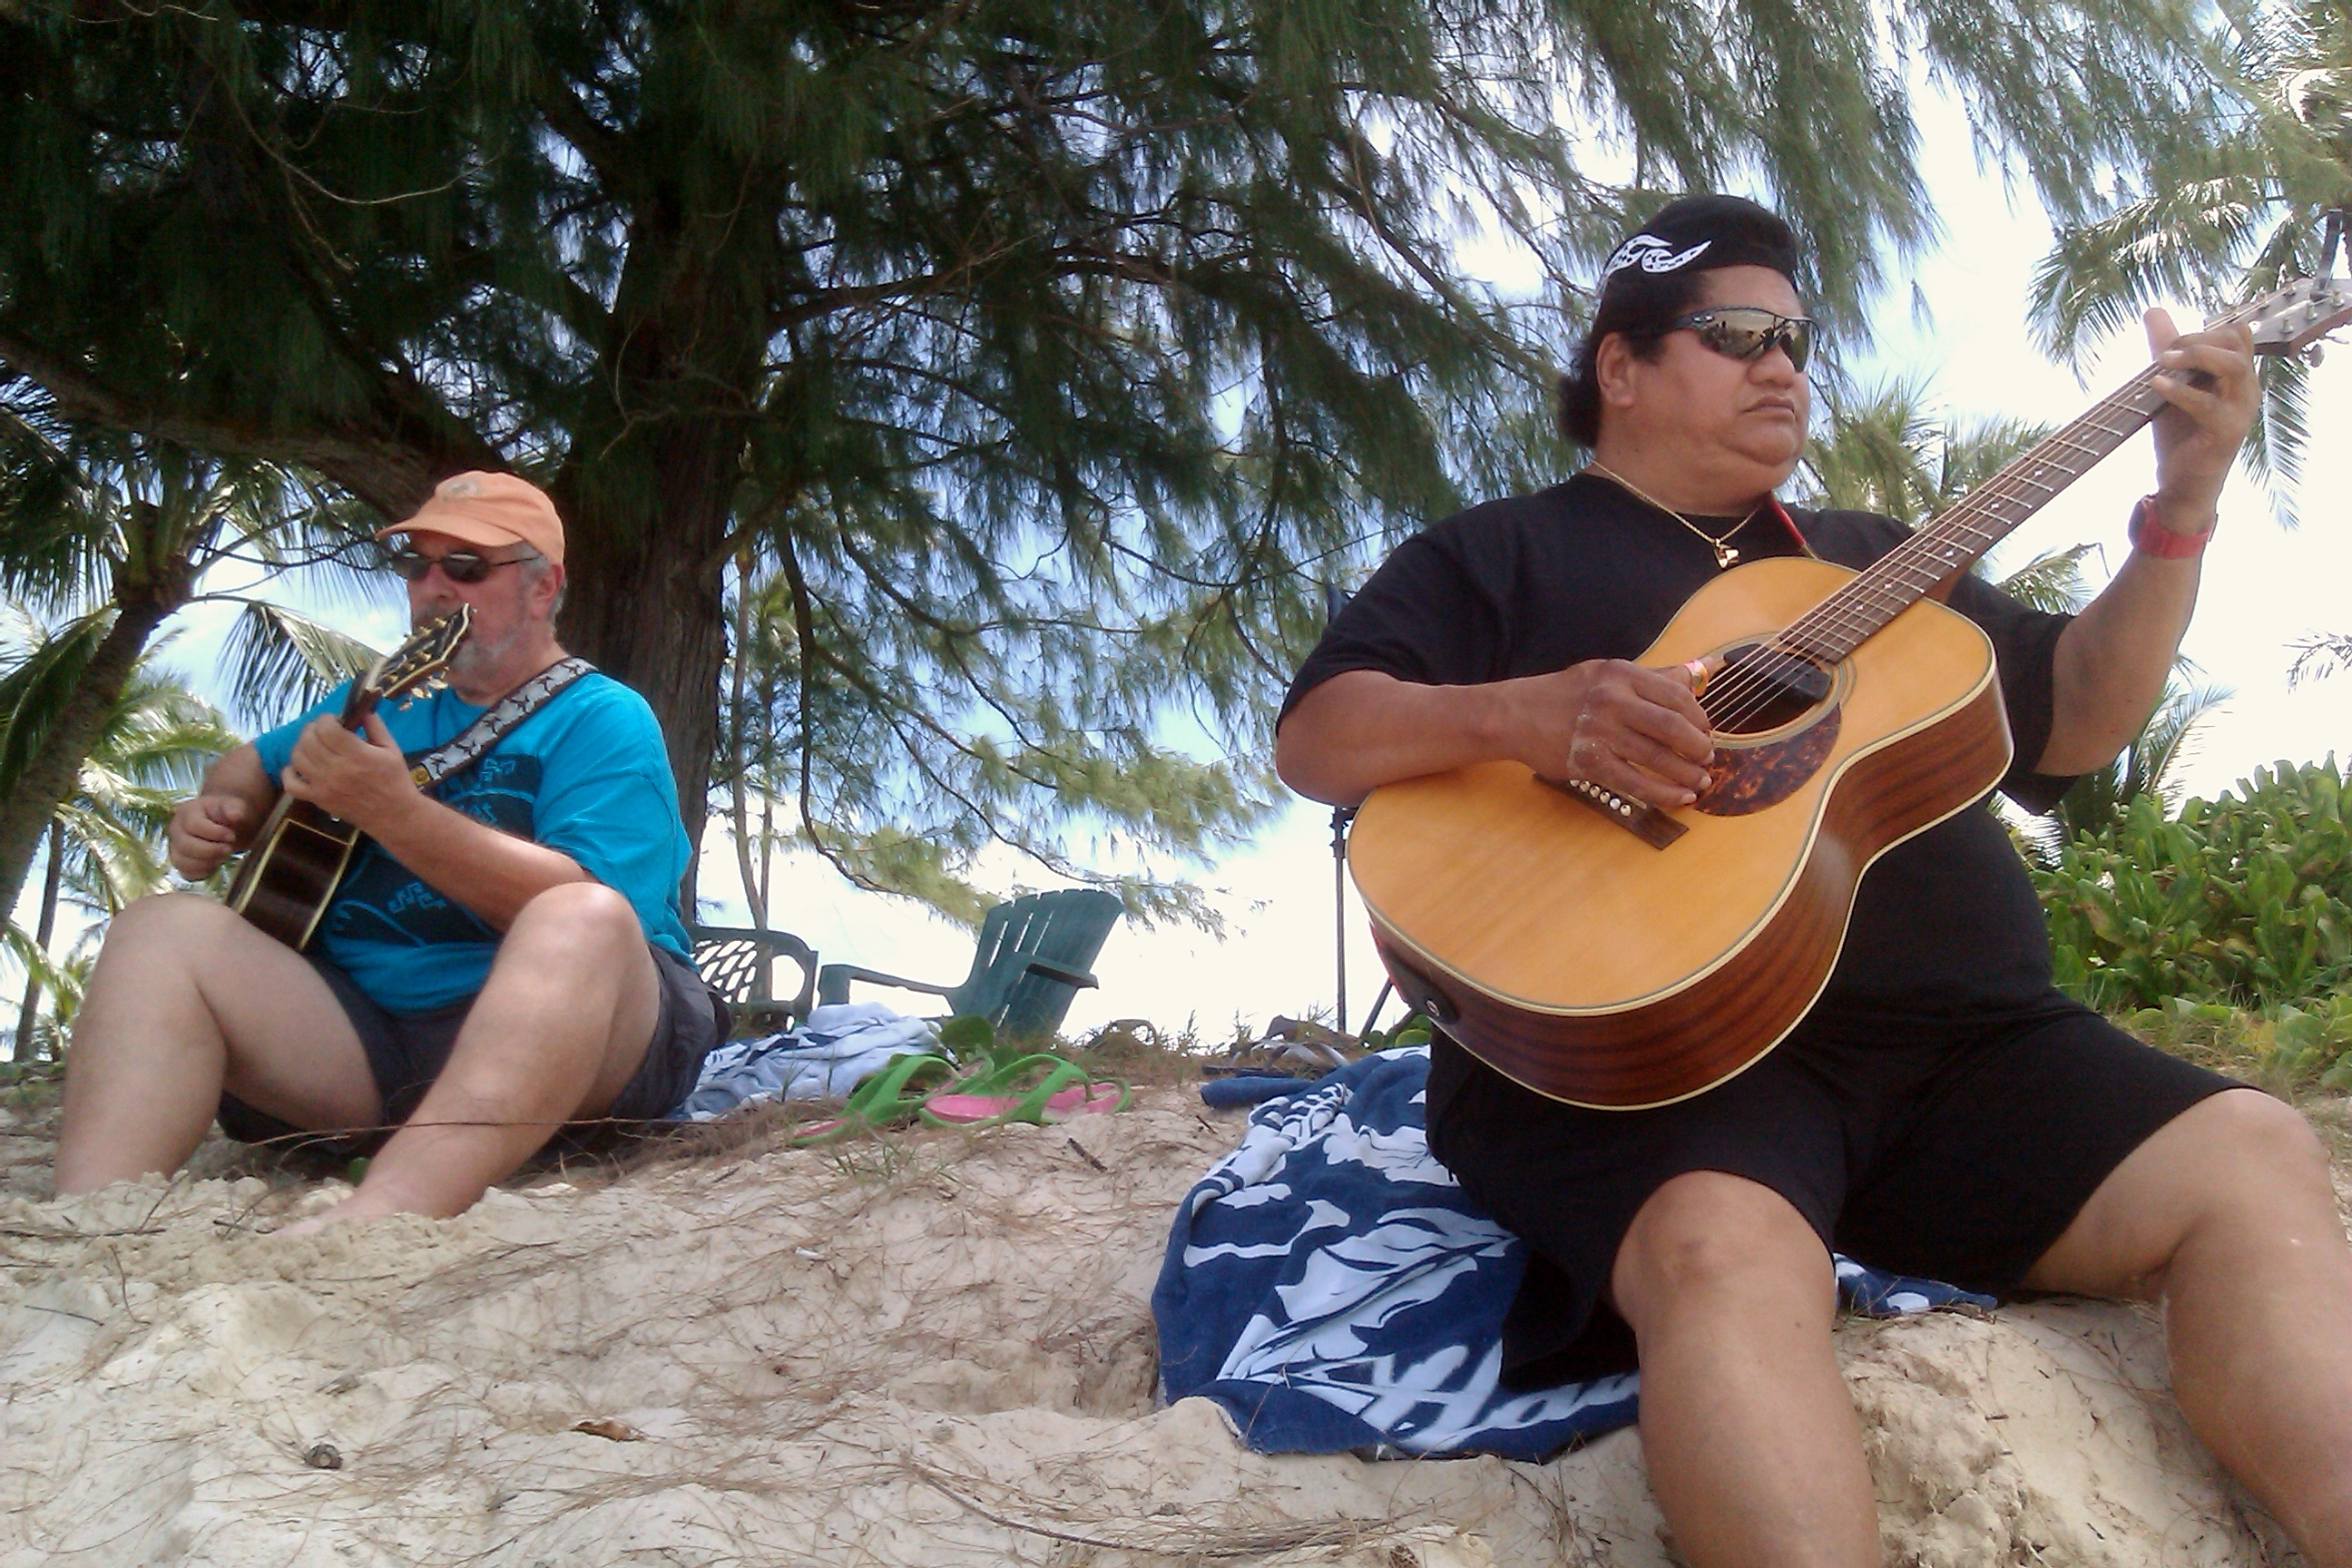 Ledward Kaapana and friend playing just for fun at Kailua Beach.